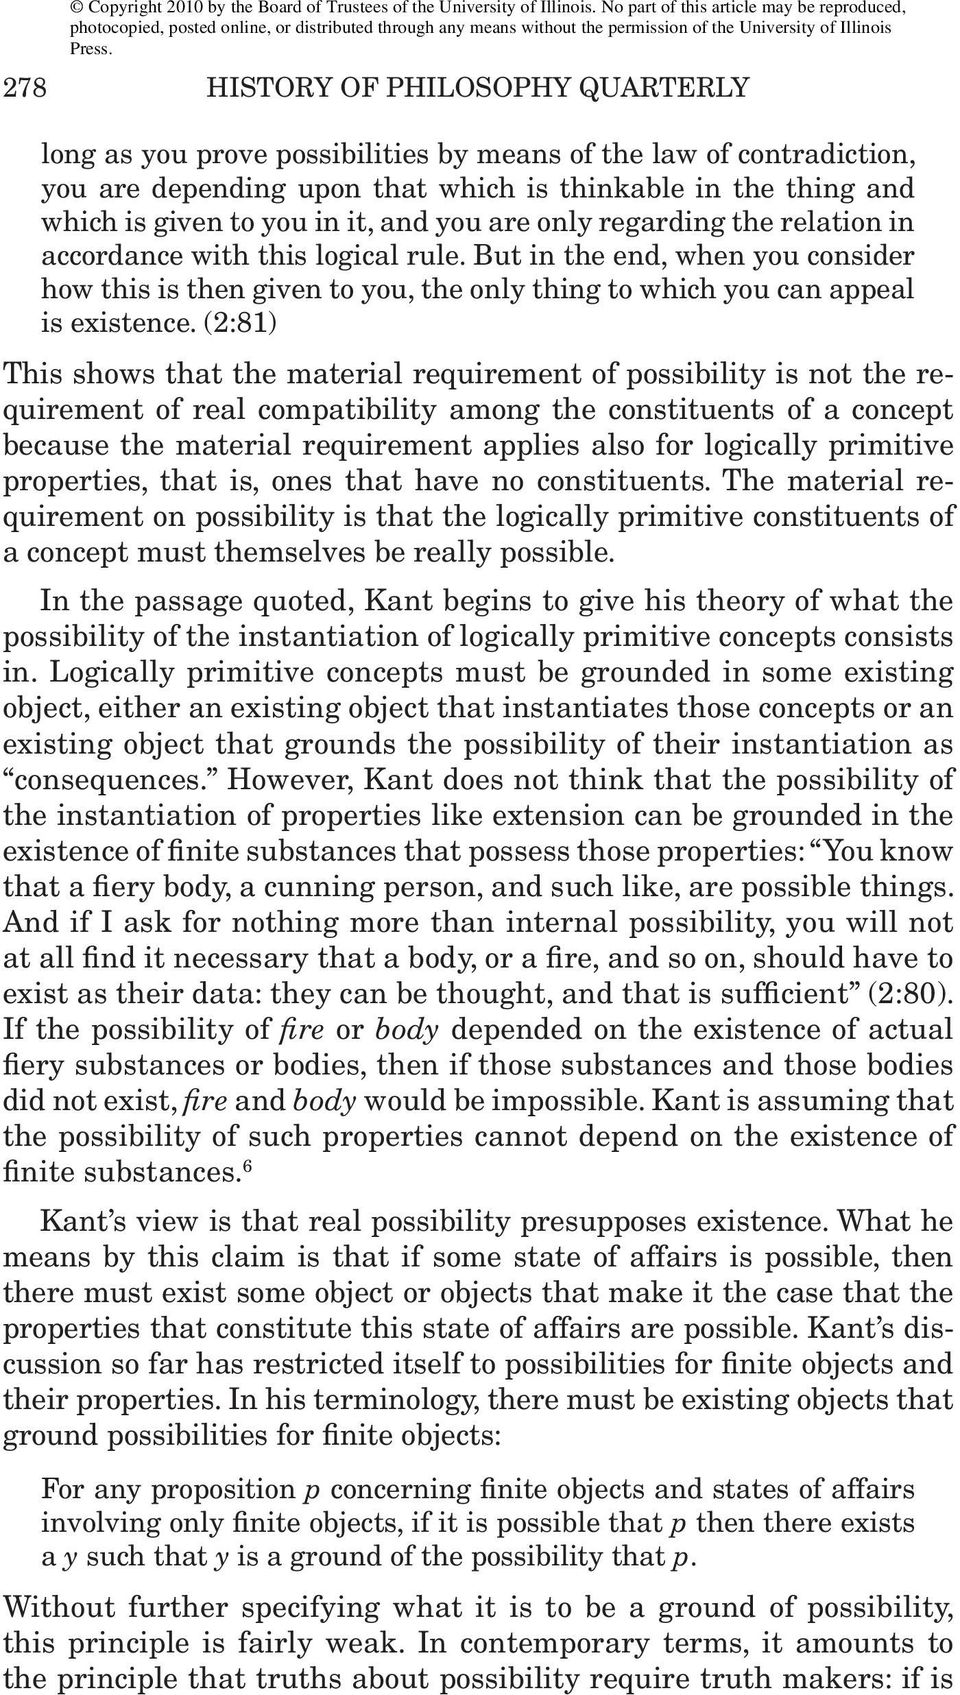 (2:81) This shows that the material requirement of possibility is not the requirement of real compatibility among the constituents of a concept because the material requirement applies also for